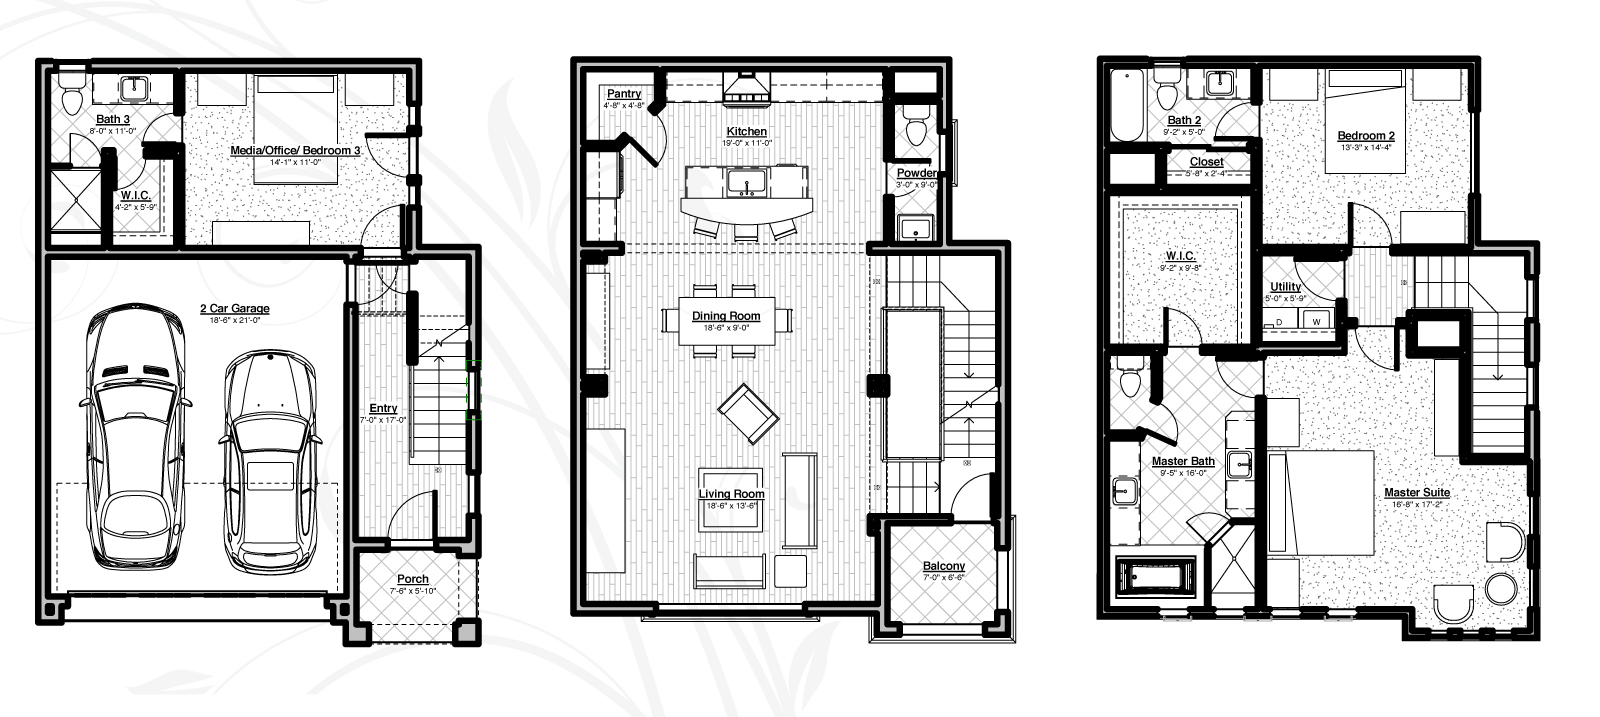 Stillman single family homes floorplan drake homes inc for Single family house plans